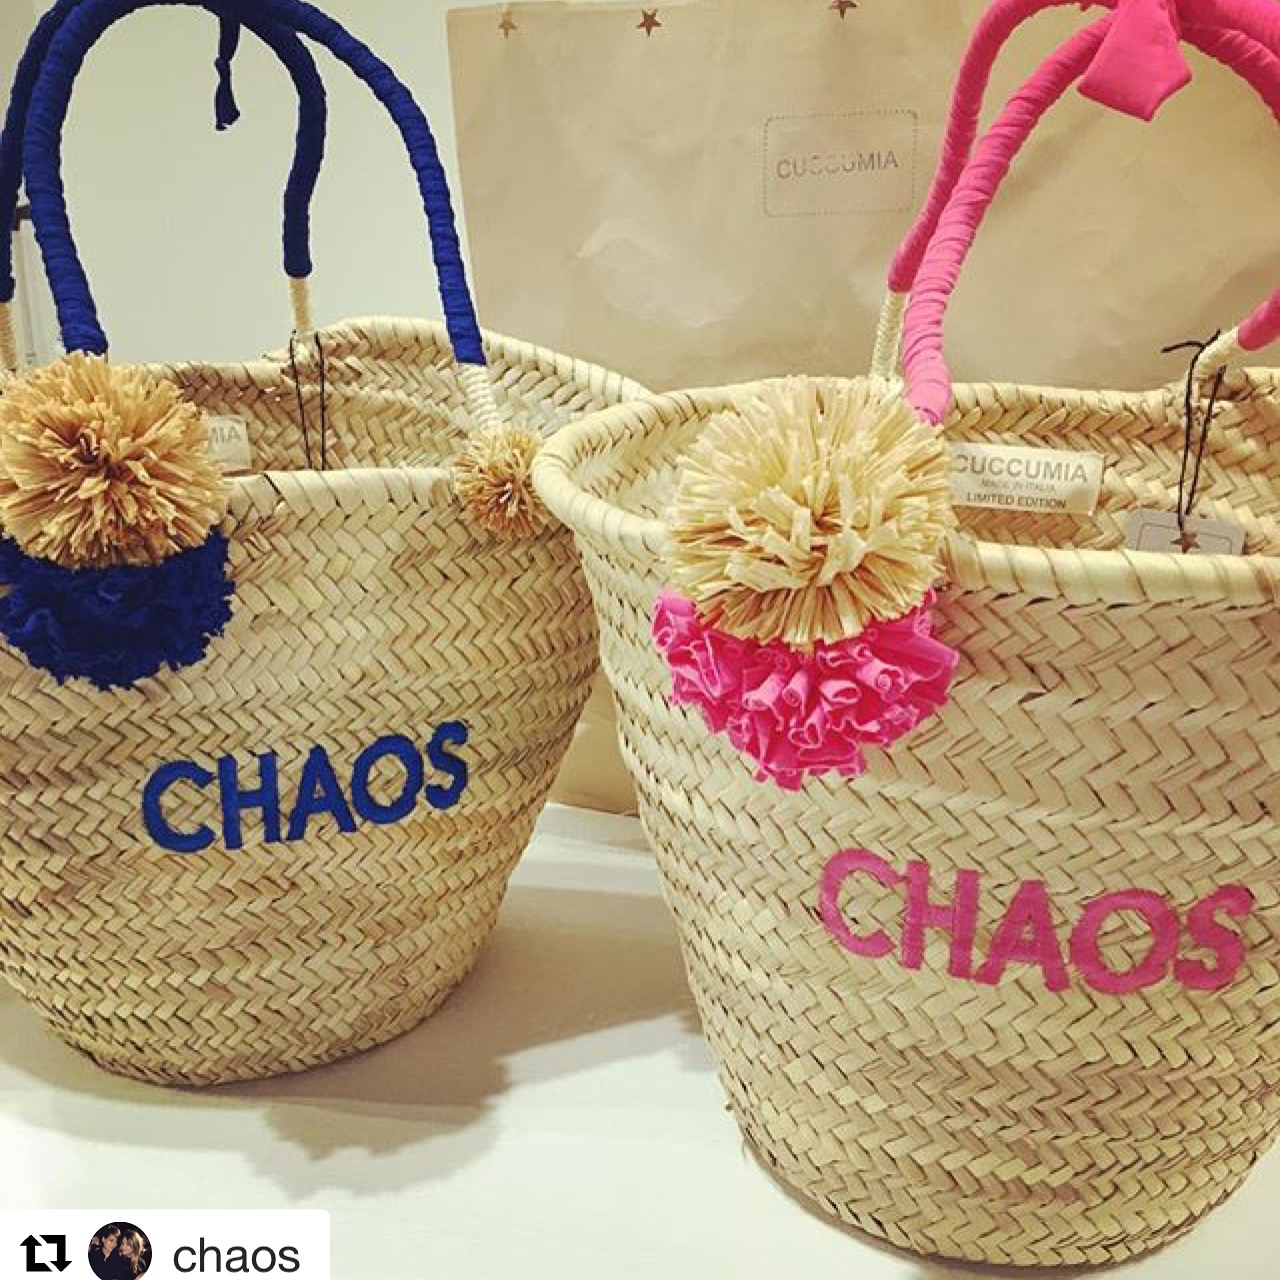 Chaos Fashion -Charlotte Stockdale and Katie Lyall